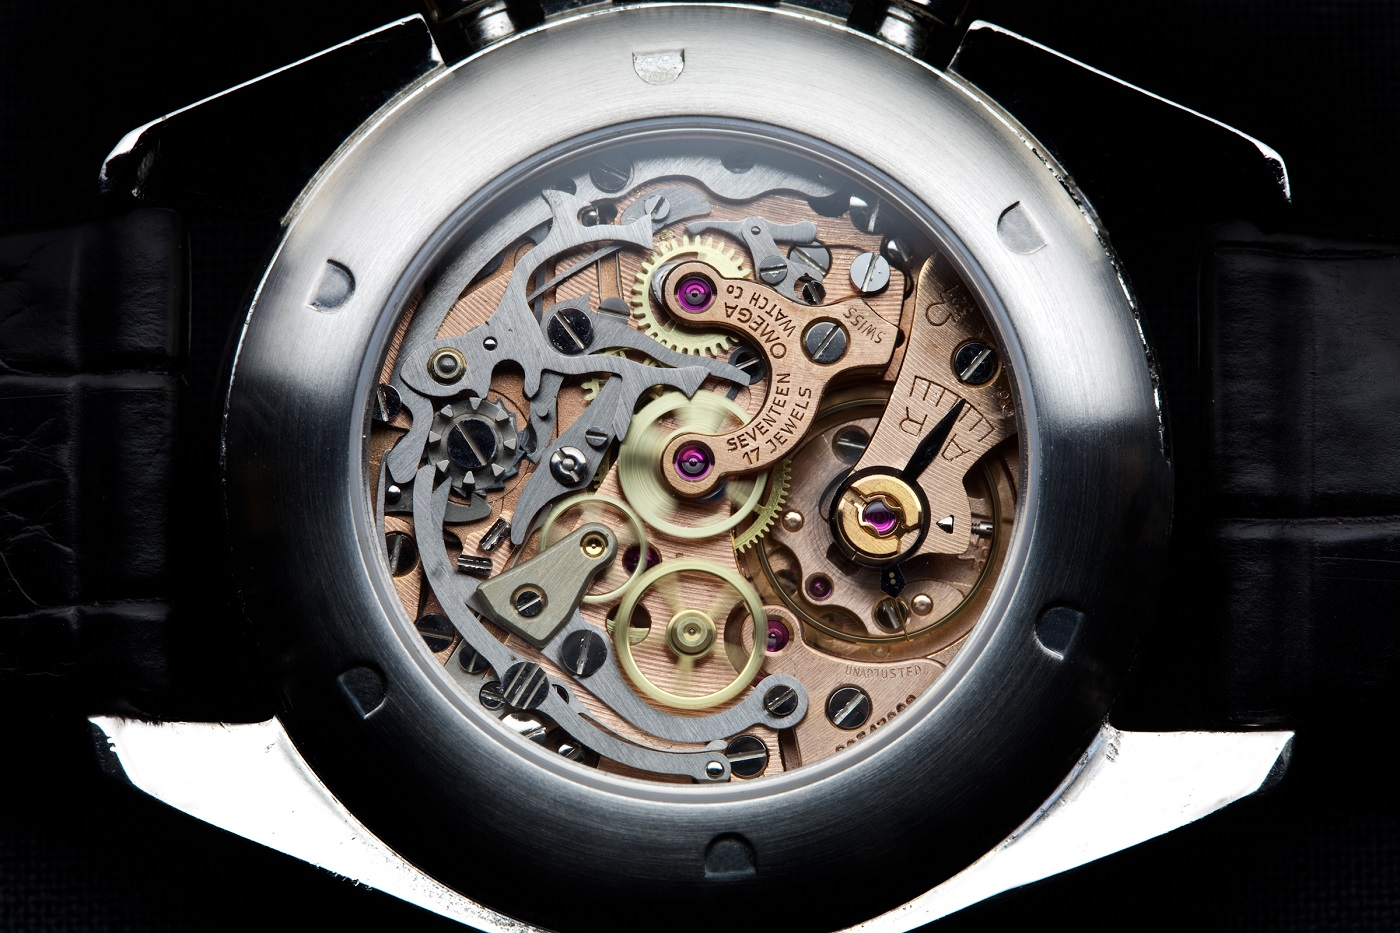 Omega Cal. 321 Chronograph movement